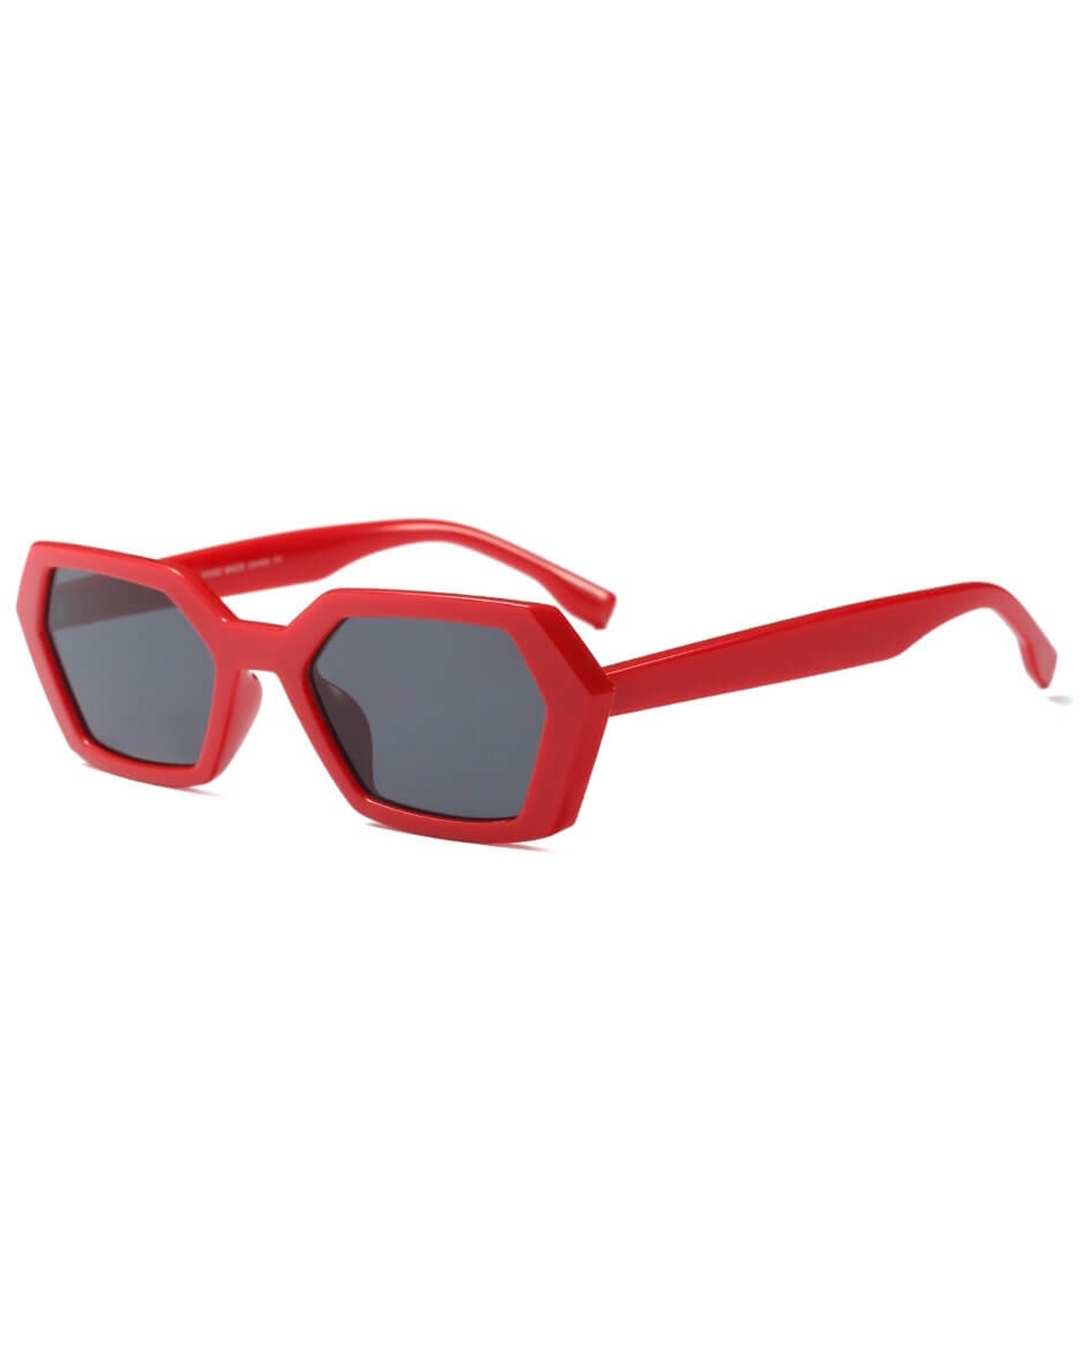 angular red sunglasses